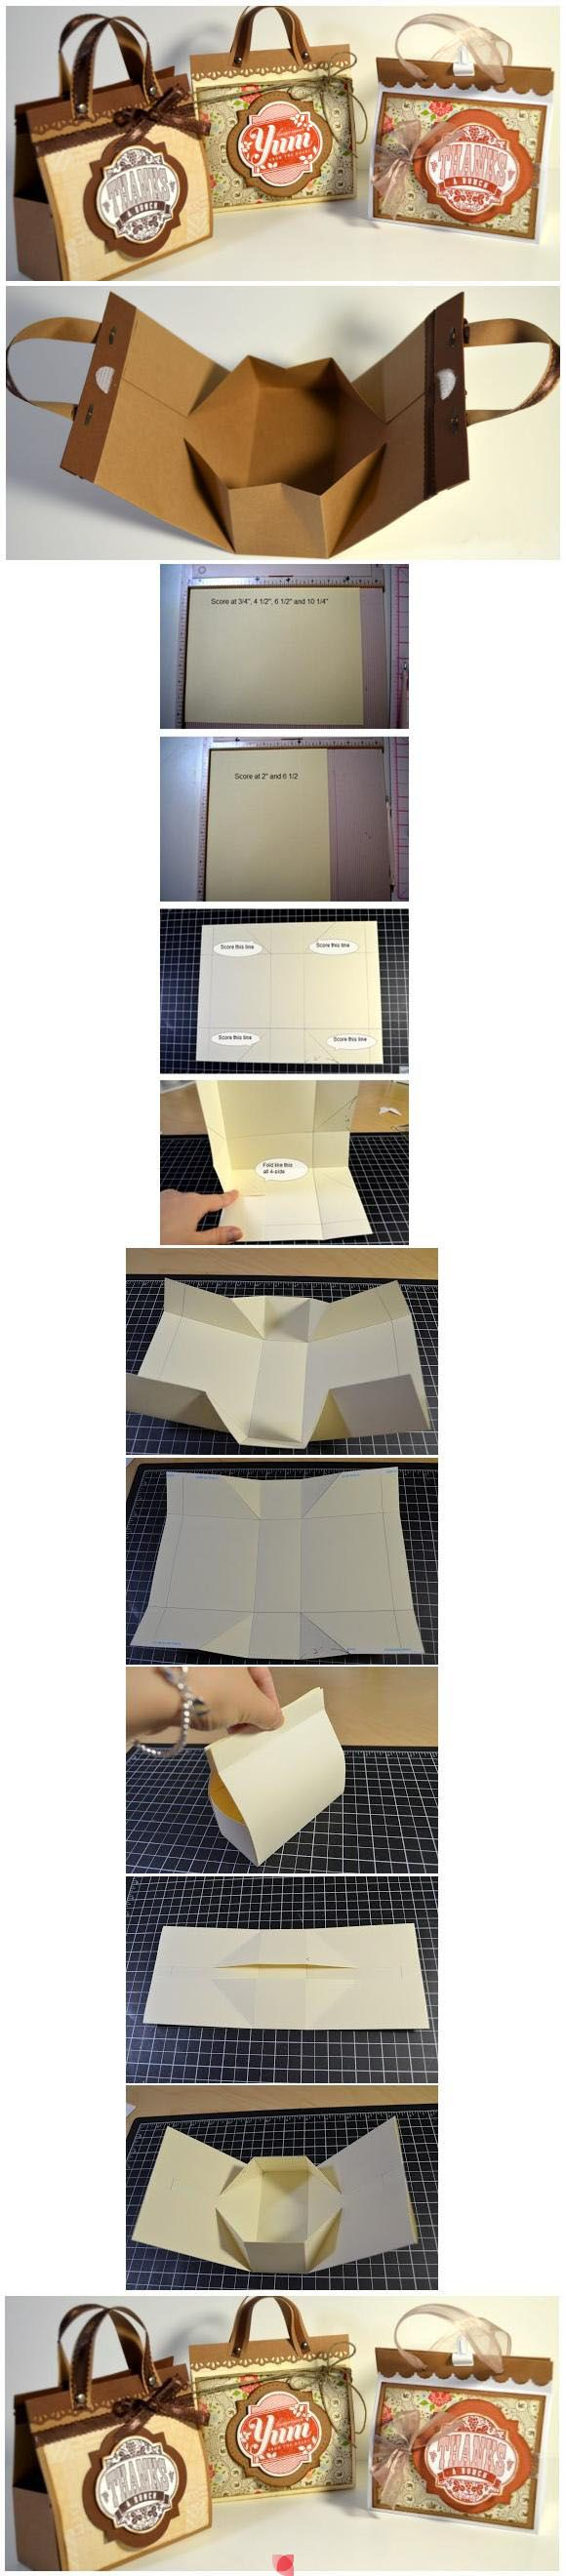 bolsa caja Gift boxes from paper bags? They look great!